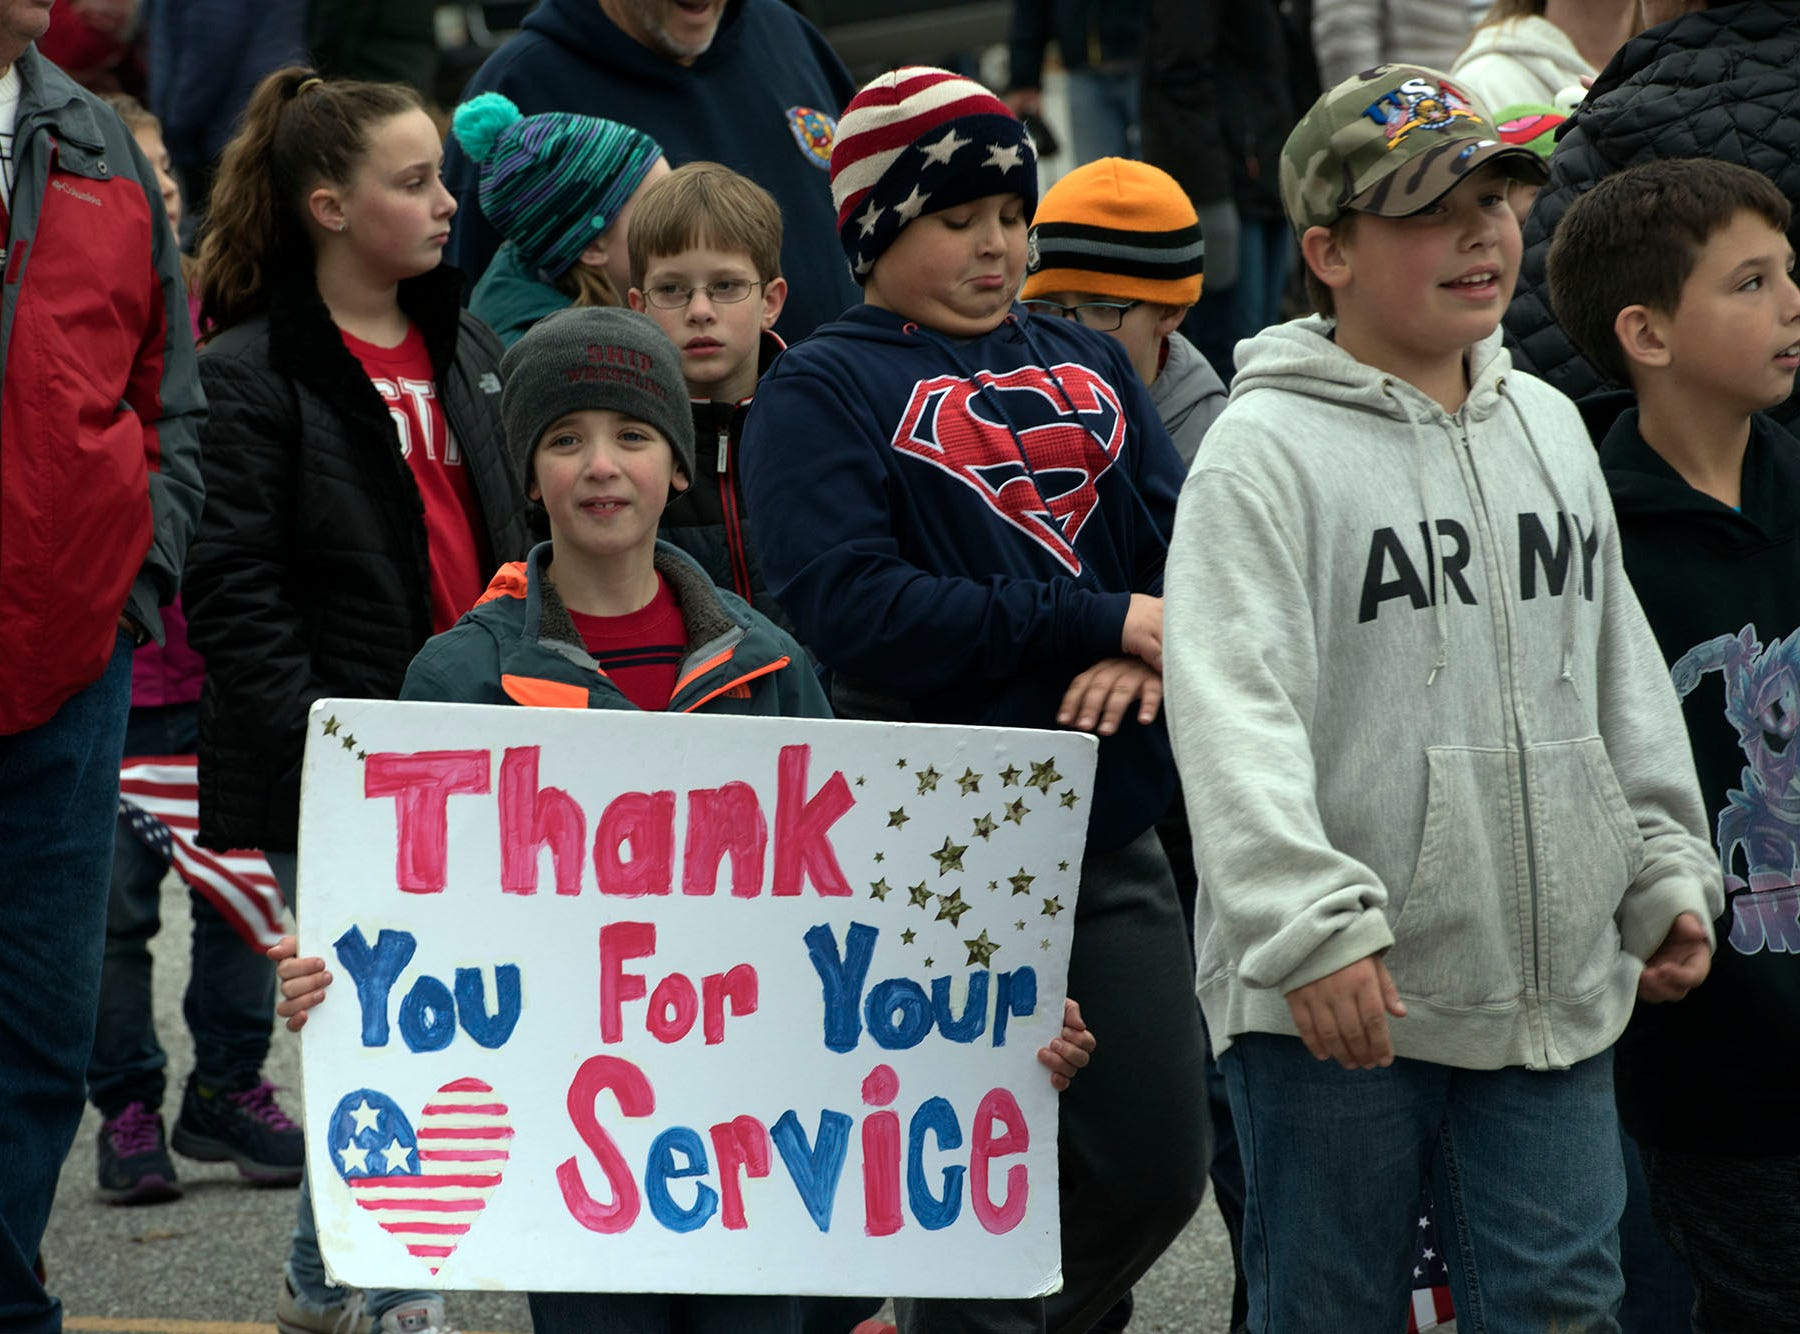 Students and servicemen and women walk during a Veterans Day Parade sponsored by James Burd Elementary School, Shippensburg. Last year, Burd hosted its own parade because the Shippensburg parade was canceled. Now the event is becoming a tradition.